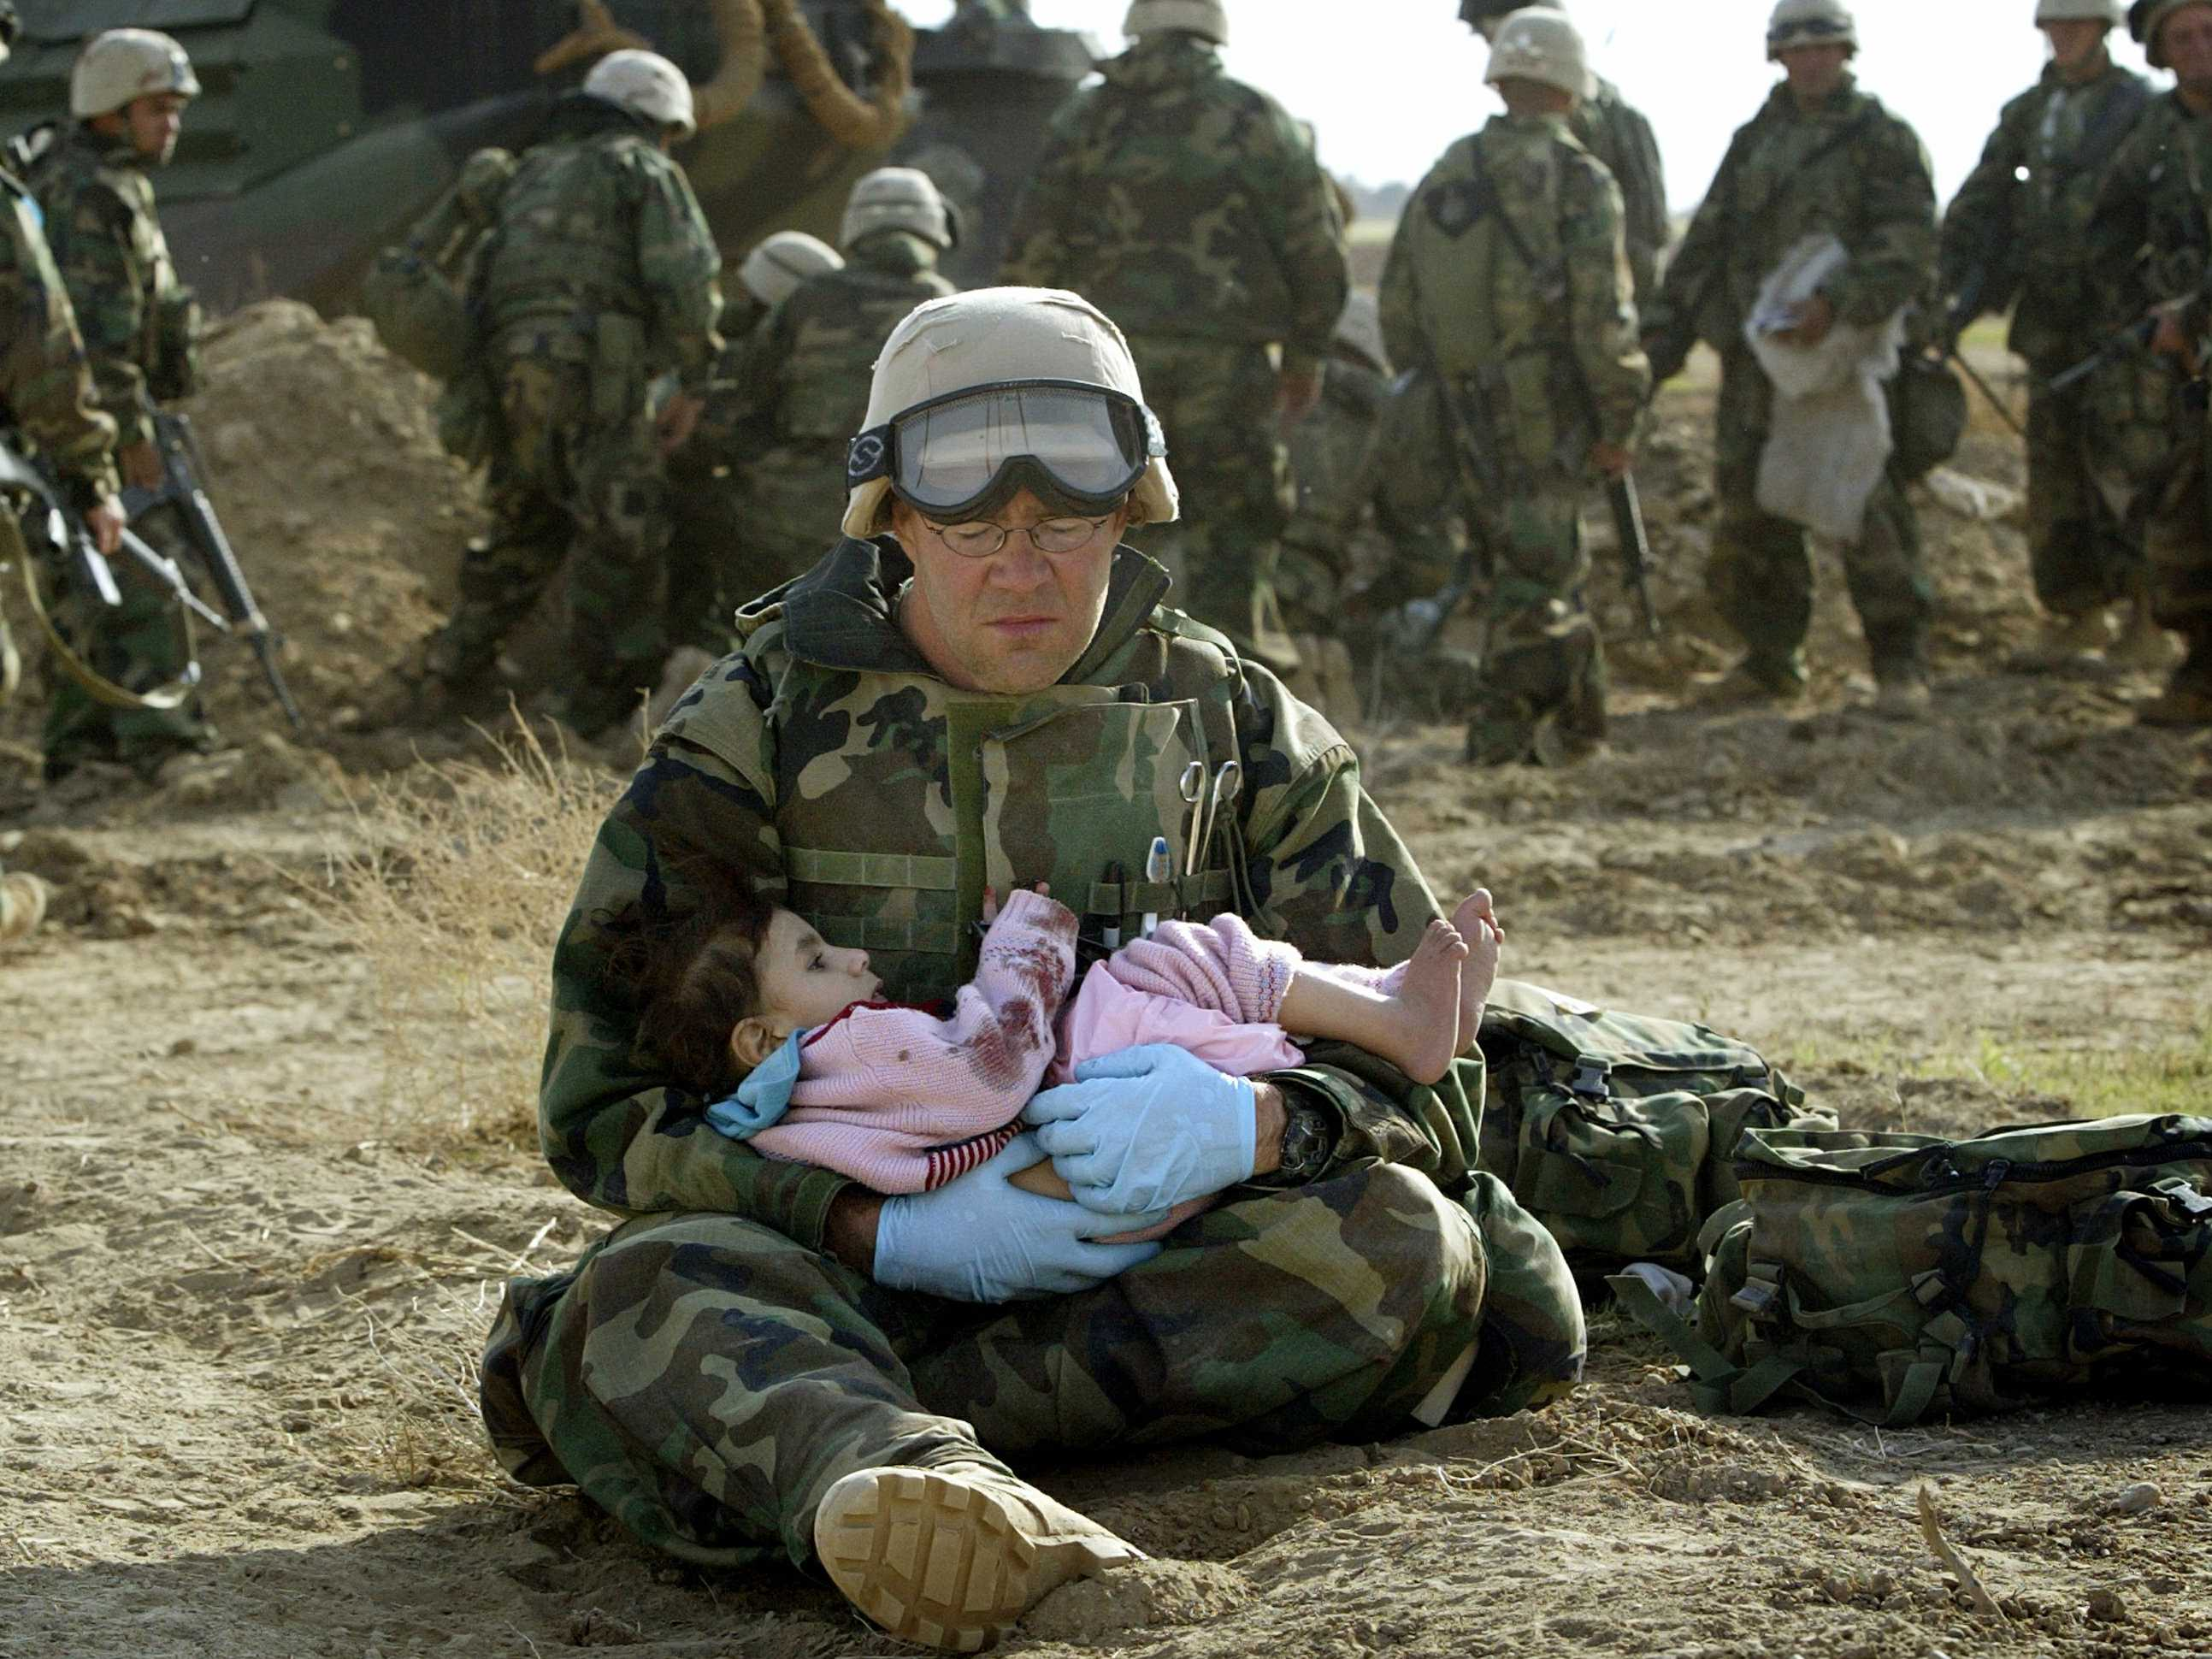 U.S. Navy Hospital Corpsman HM1 Richard Barnett, assigned to the 1st Marine Division, holds an Iraqi child in central Iraq on March 29, 2003.REUTERS/Damir Sagolj